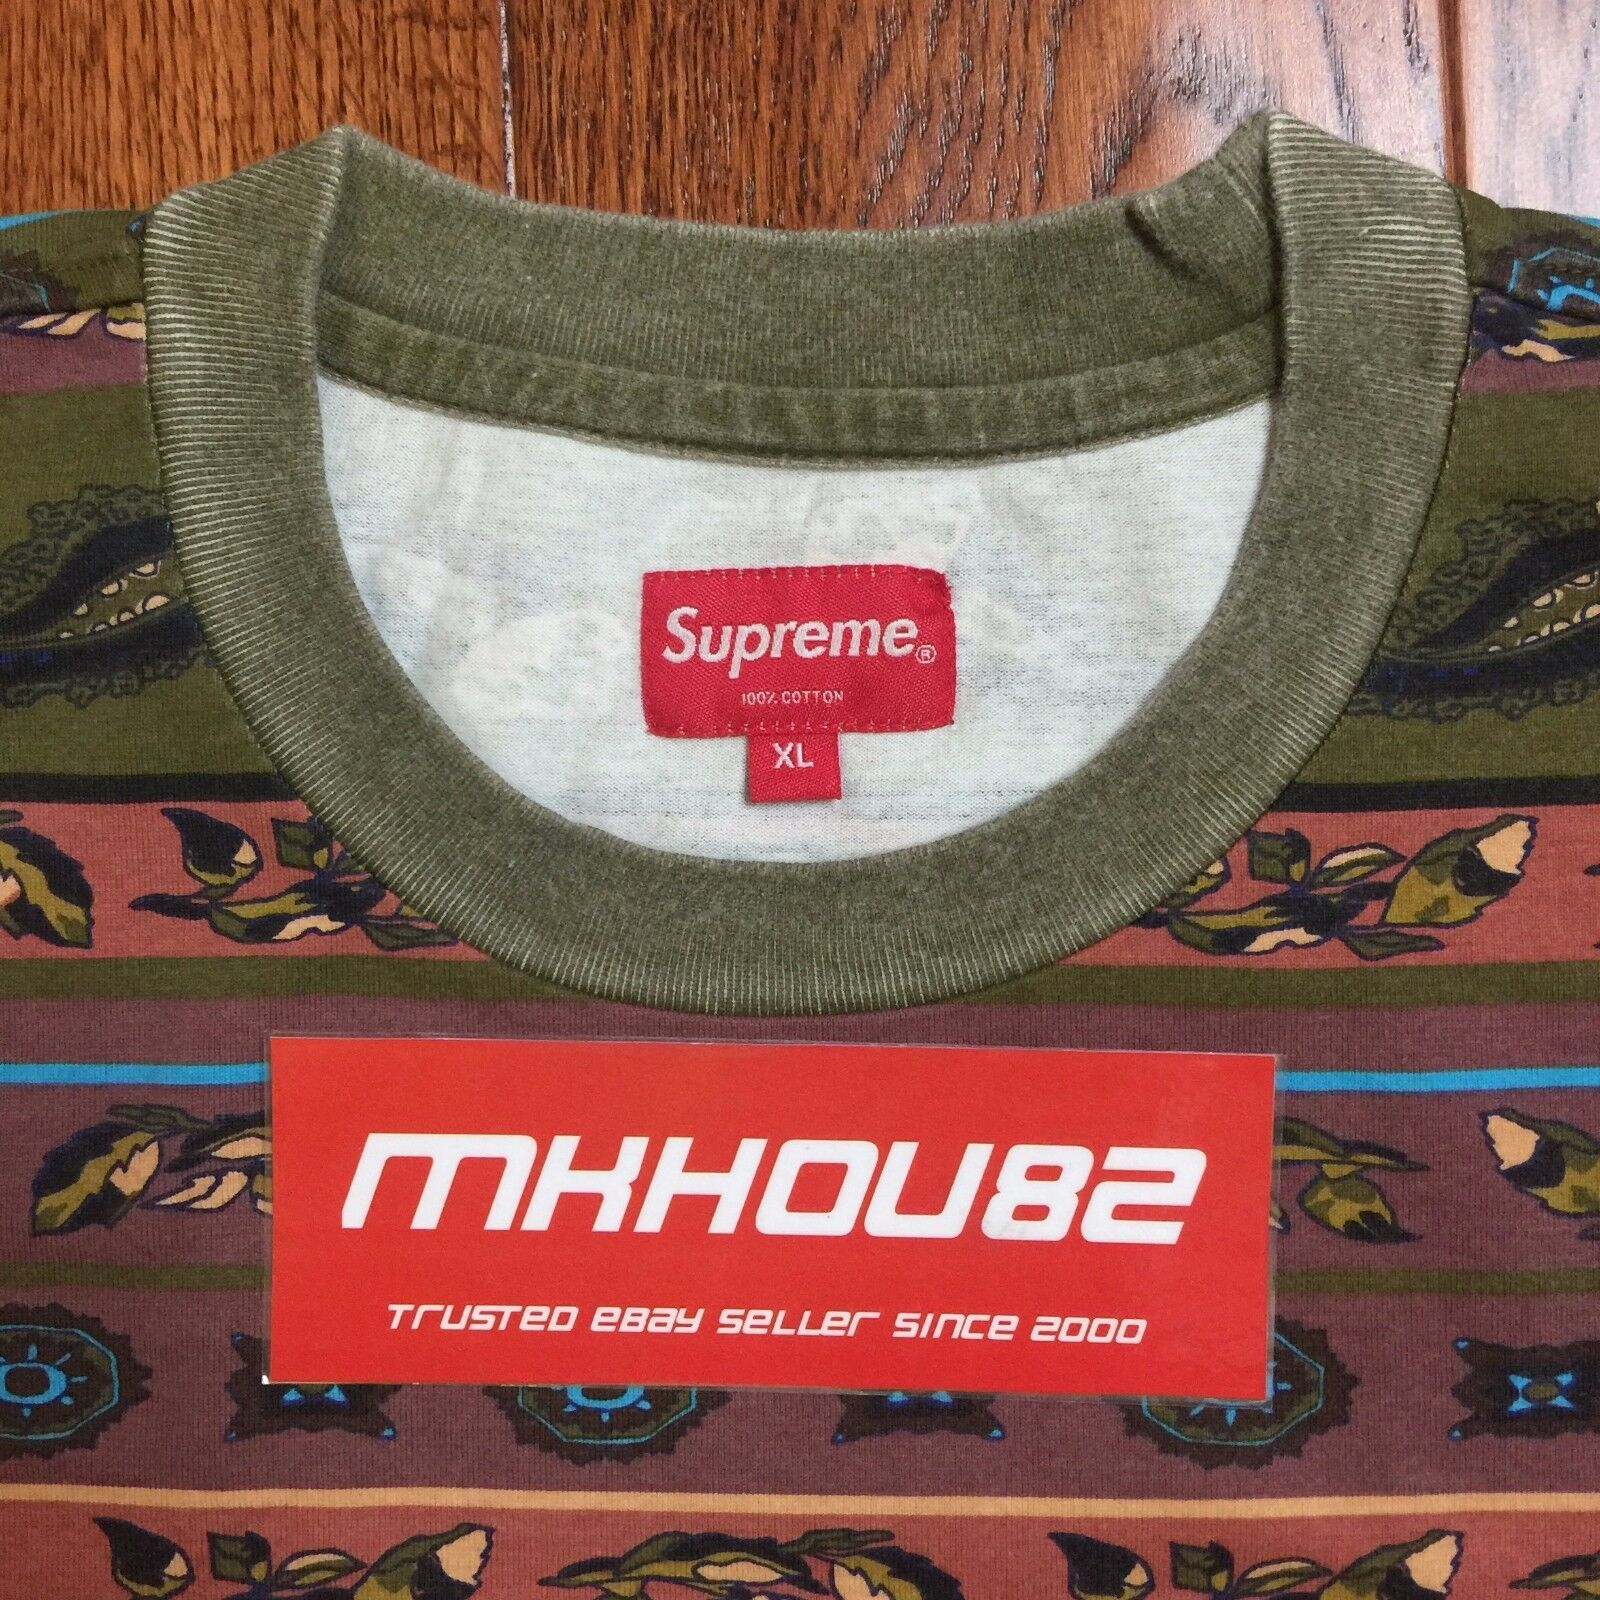 Nuovo Supreme Paisley Stripe Tee L/S Top Tee Stripe T-Shirt Olive Spring Summer 2016 Size XL 752bf0